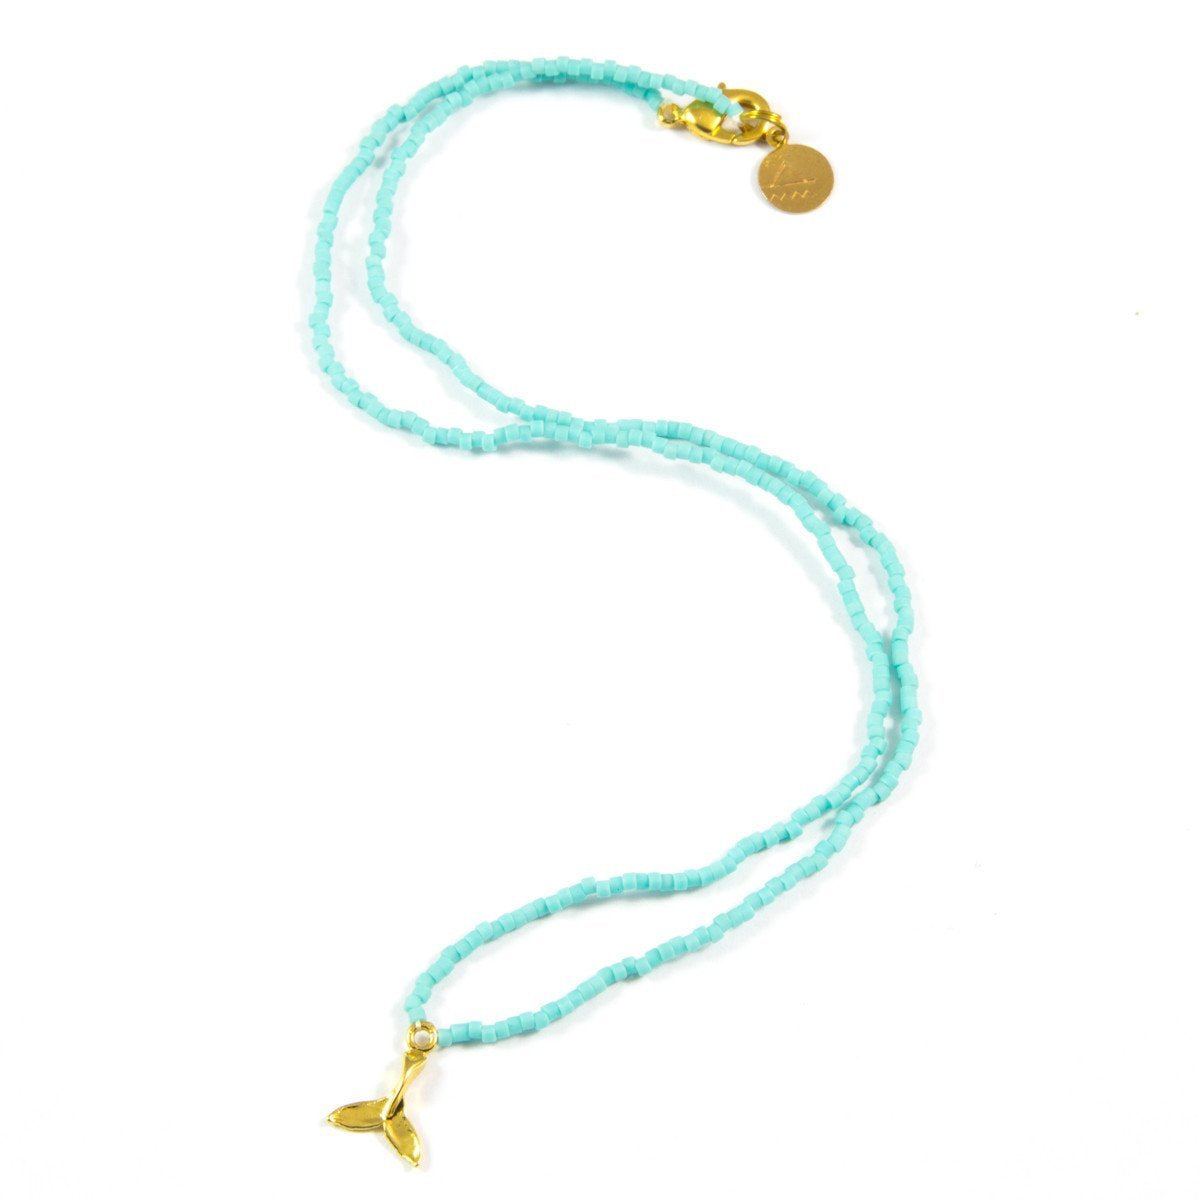 Teal Mermaid Tail Tiny Charm Necklace